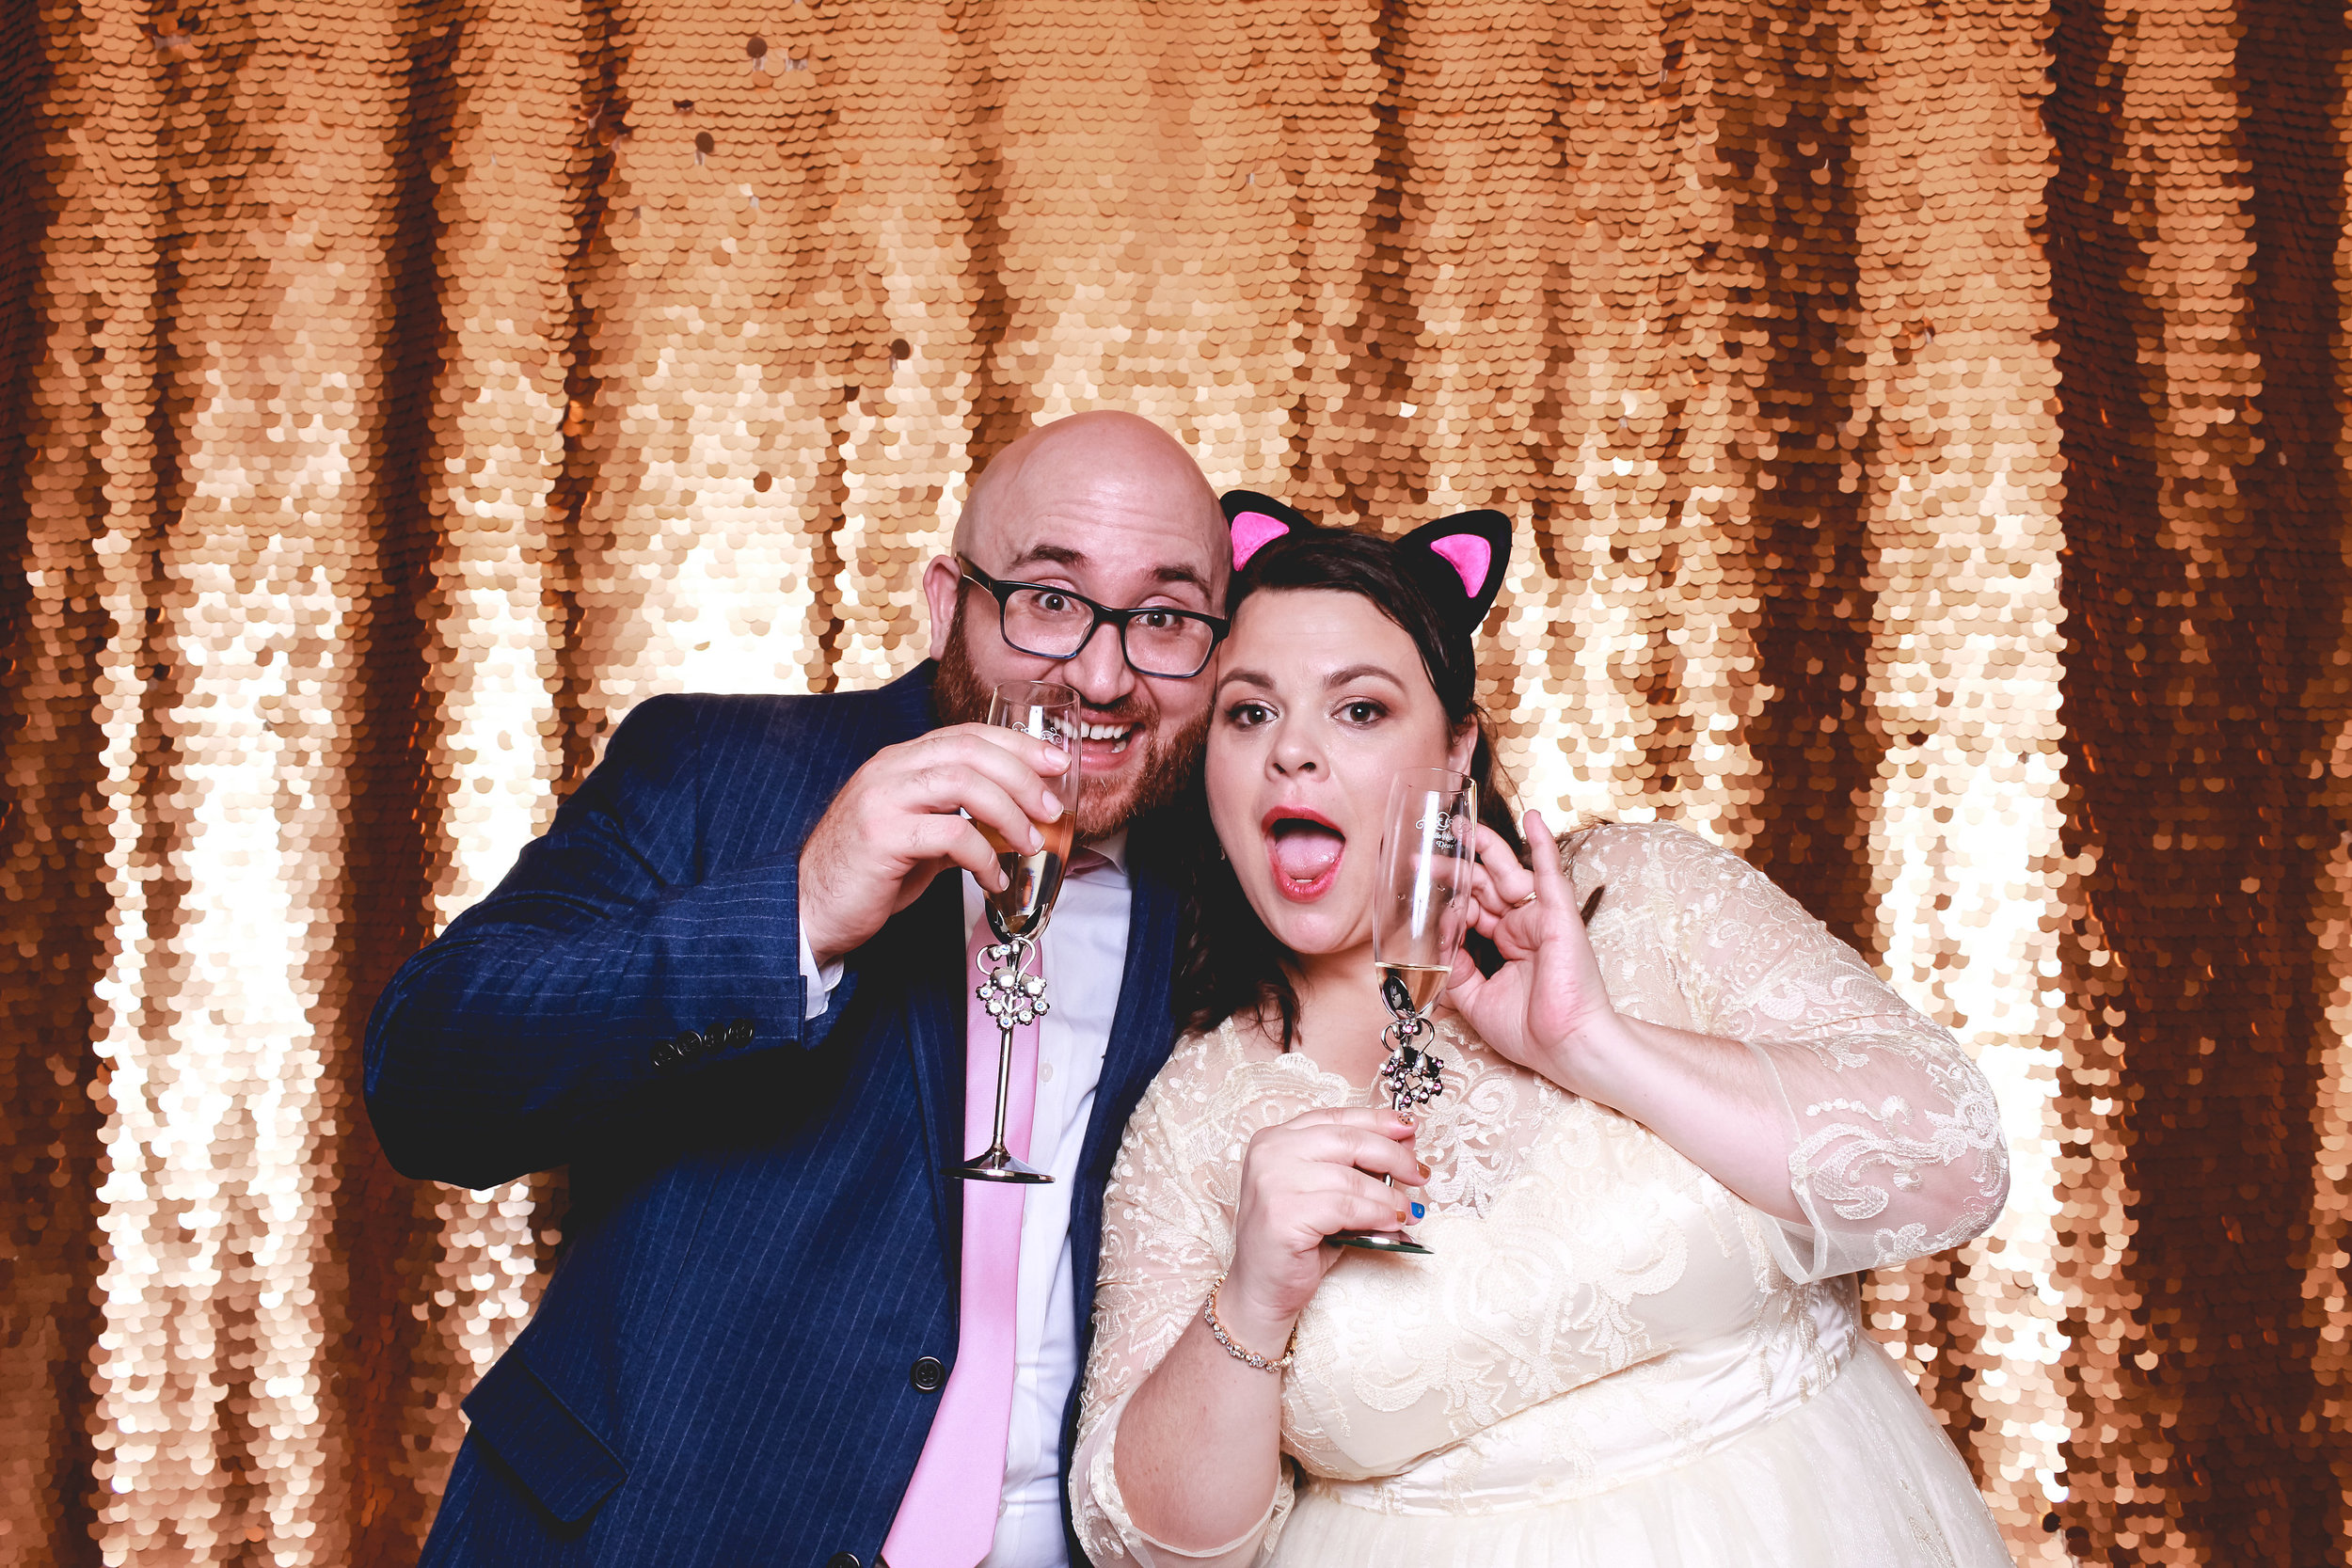 bride_and_groom-wedding-photo_booth.jpg